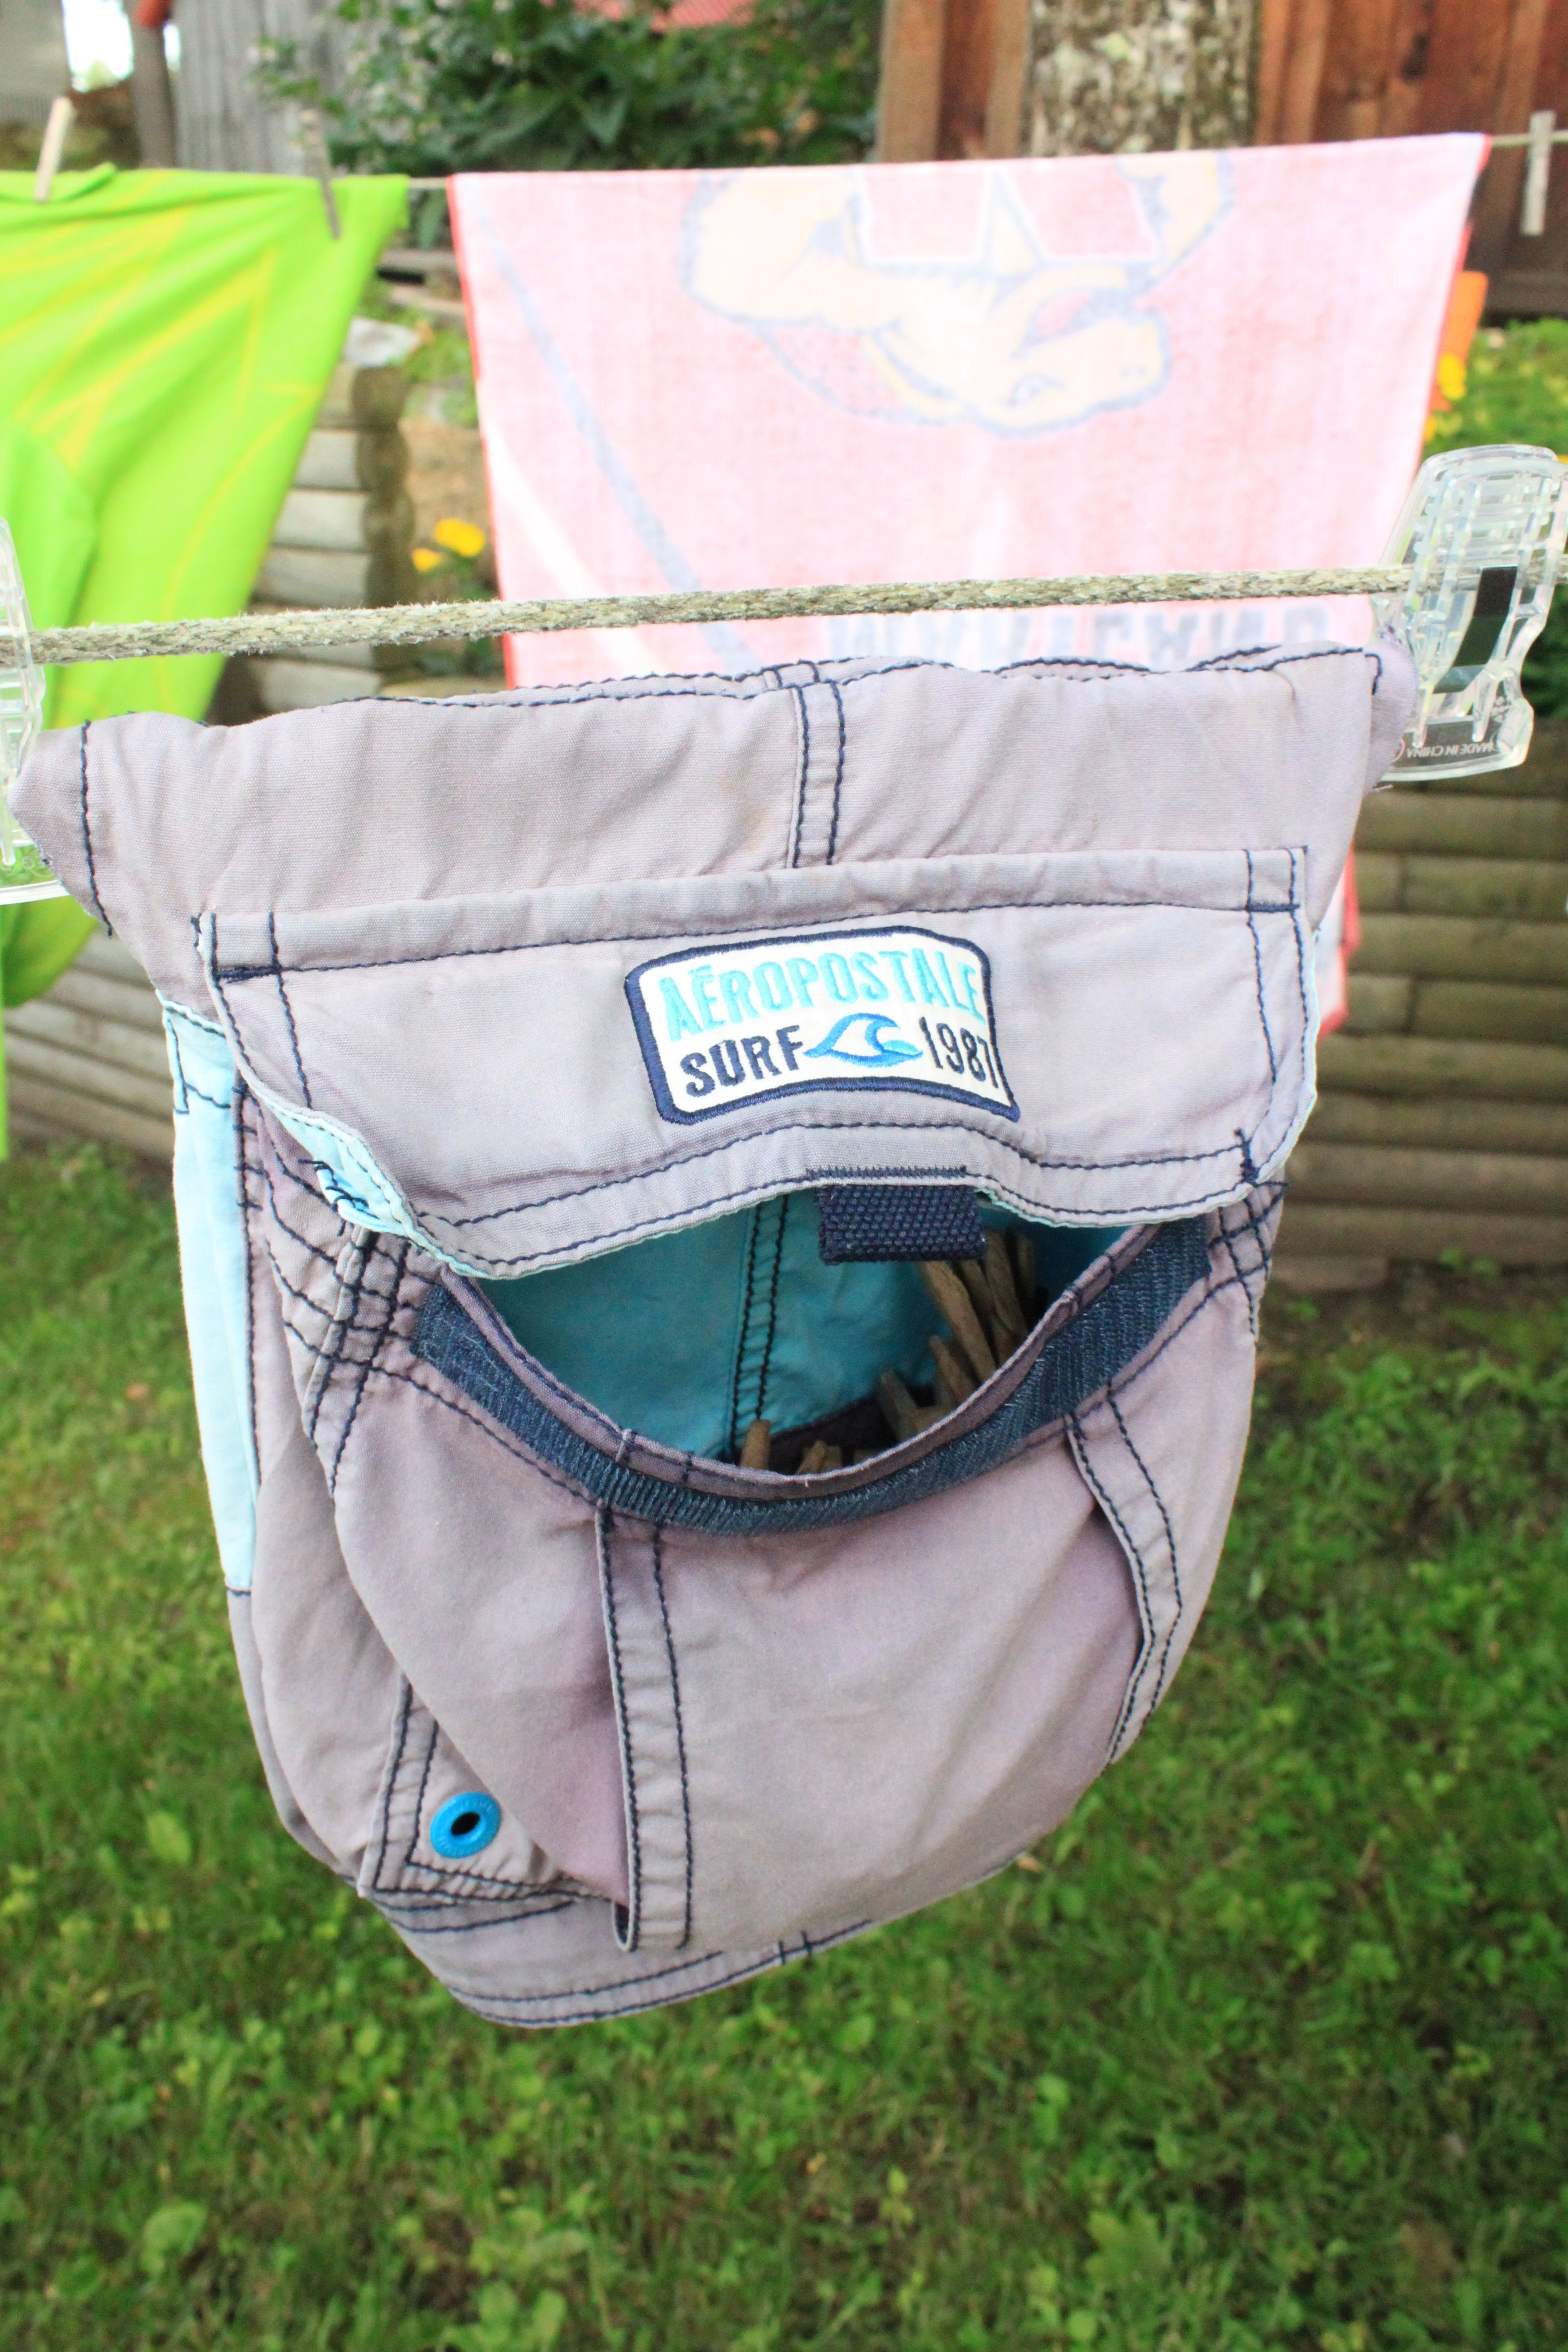 Hottest Totally Free Brians Cargo Aeropostale swimsuit changed into a clothes pin holder at the lake Suggestions You know conventional garments hangers that you will real...